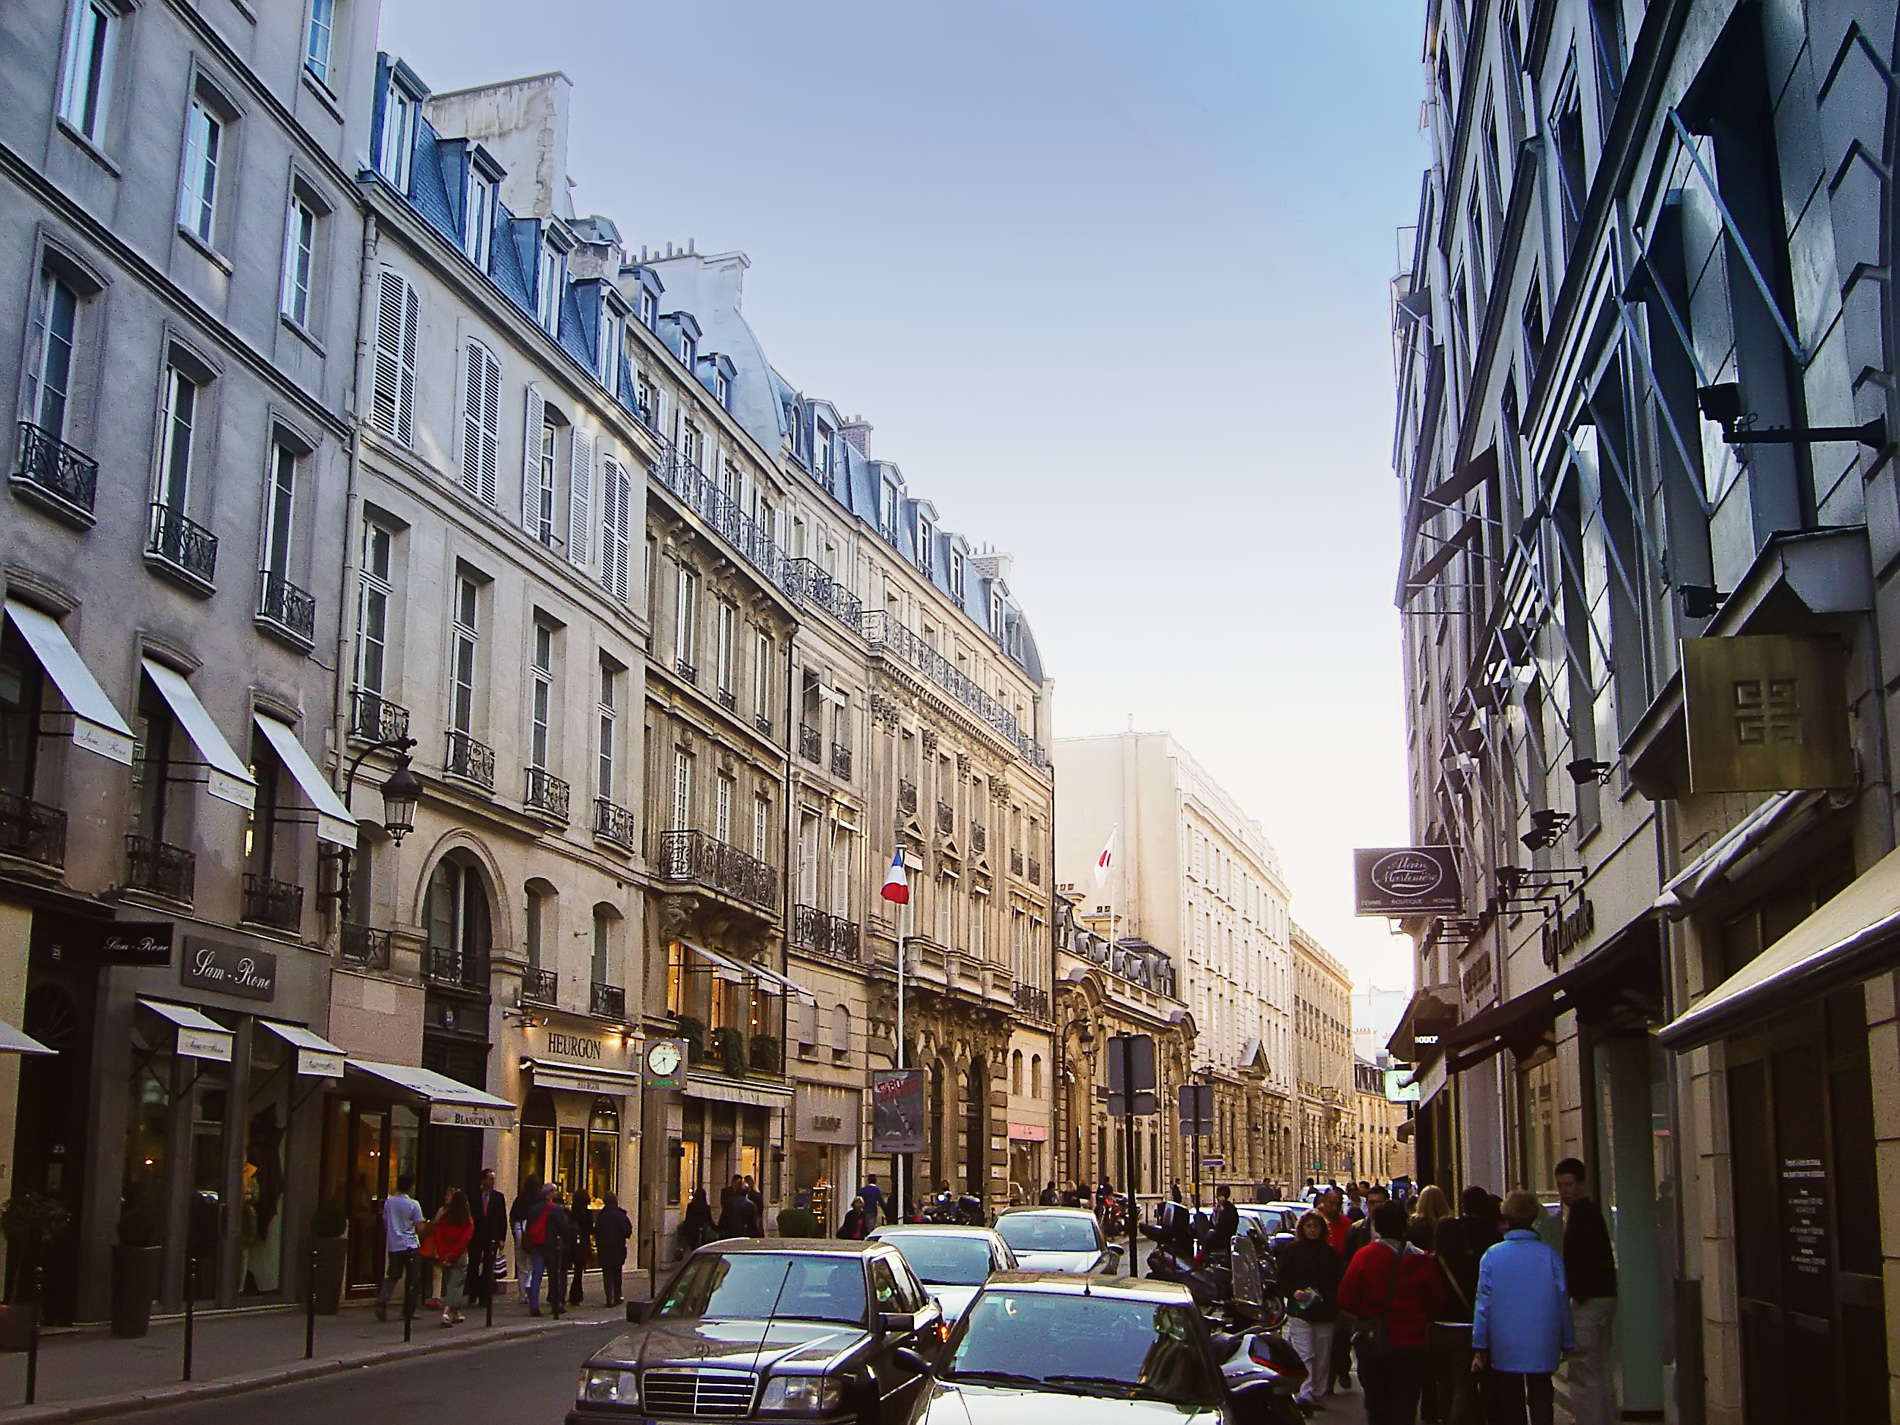 24 Hours in Paris - Shopping at Rue St Honore